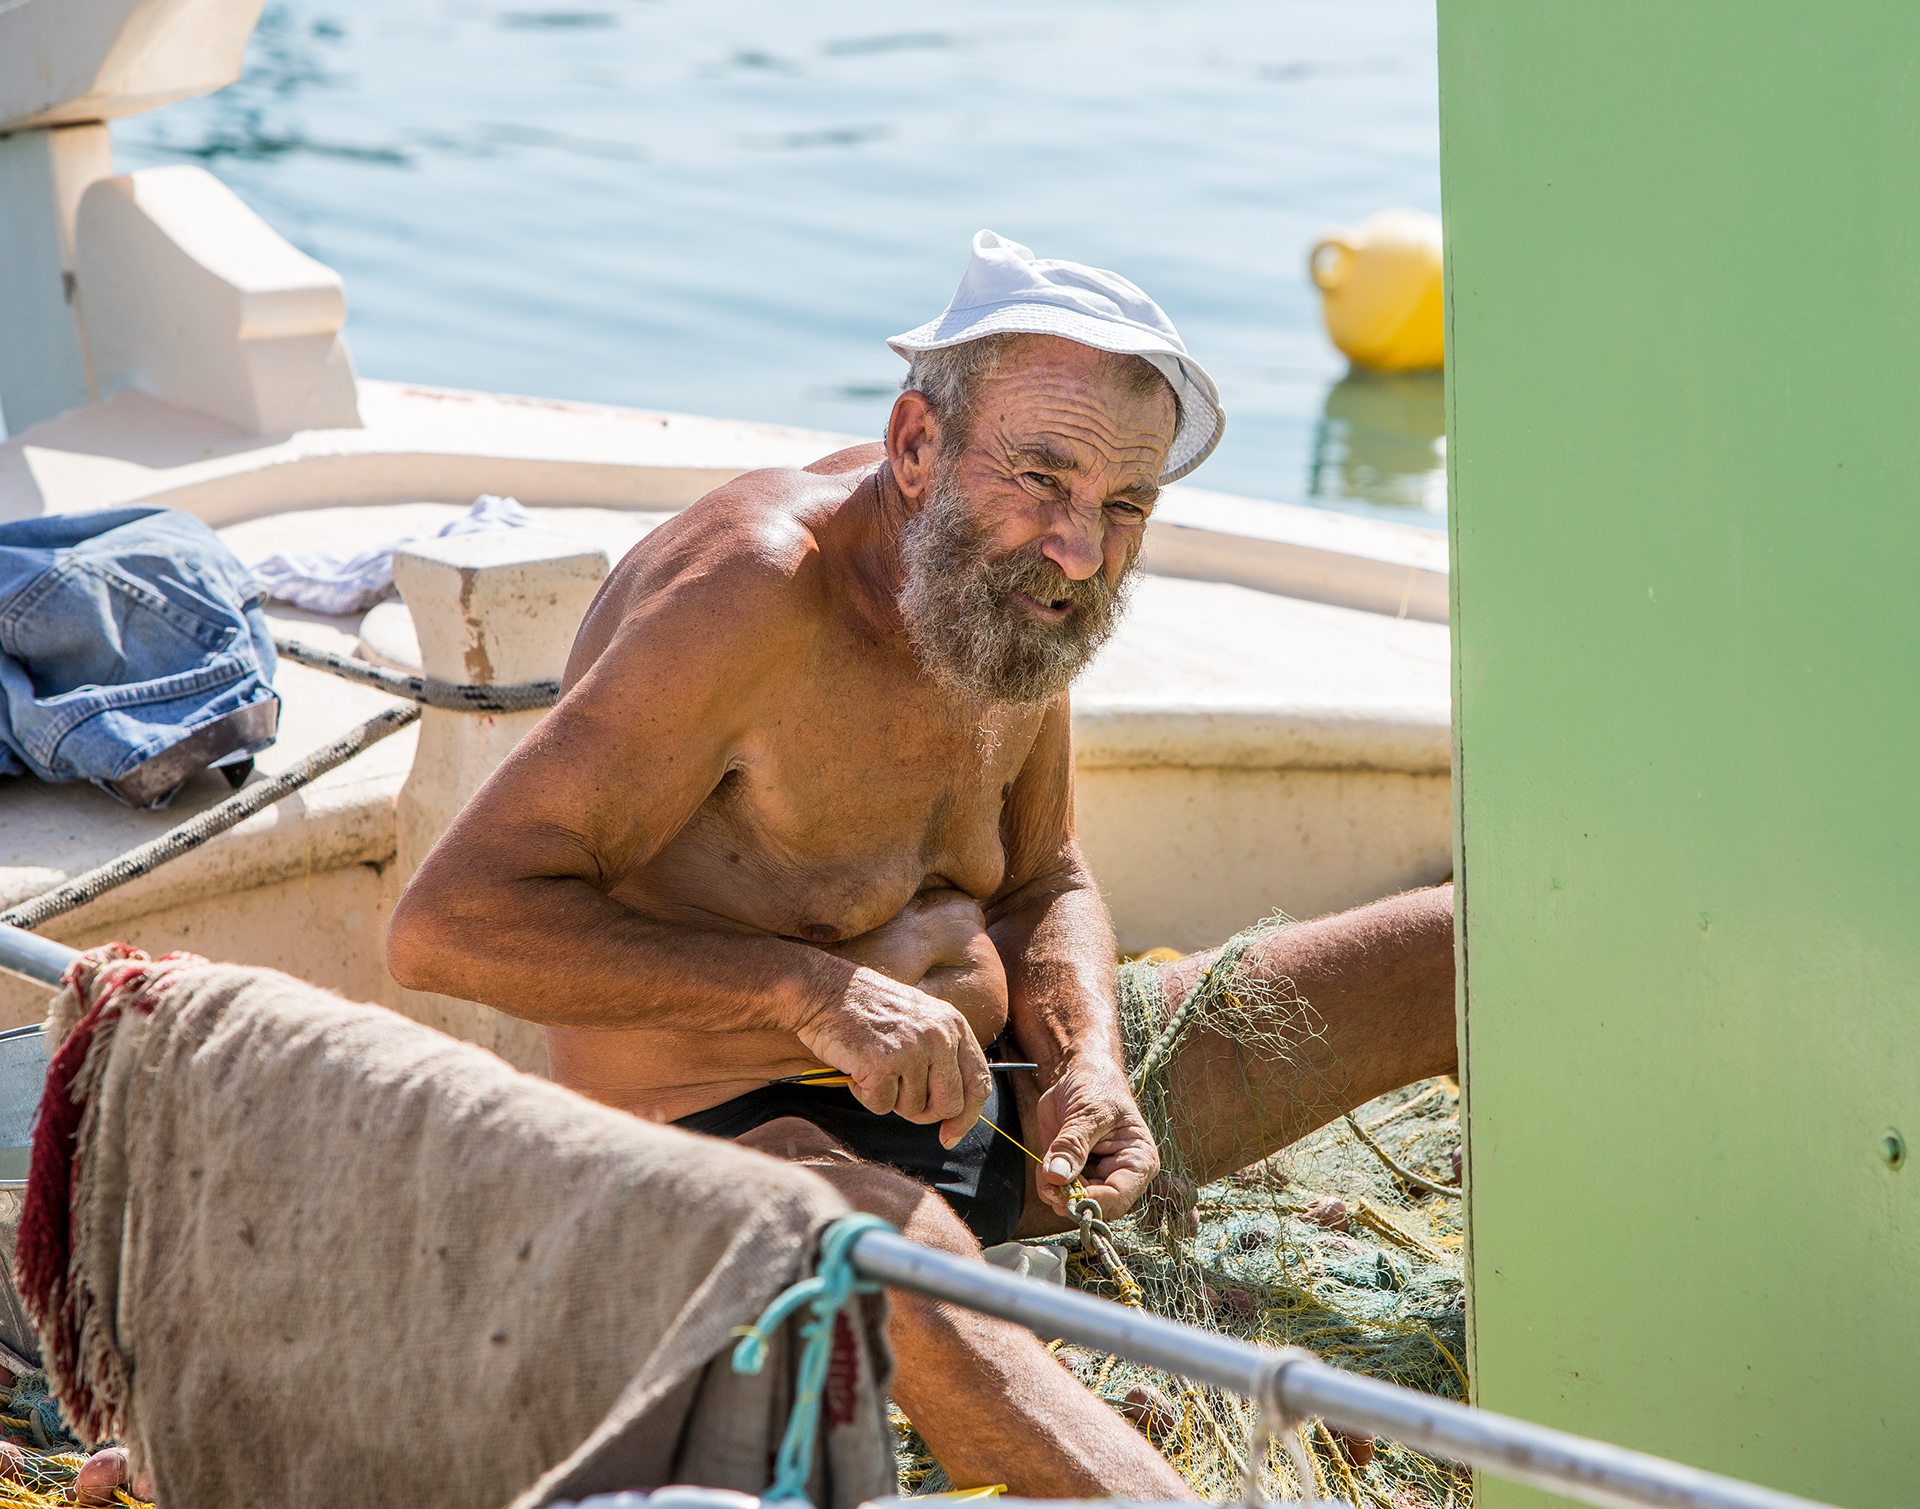 Fisherman, Corinth, Greece, networking, net, nets